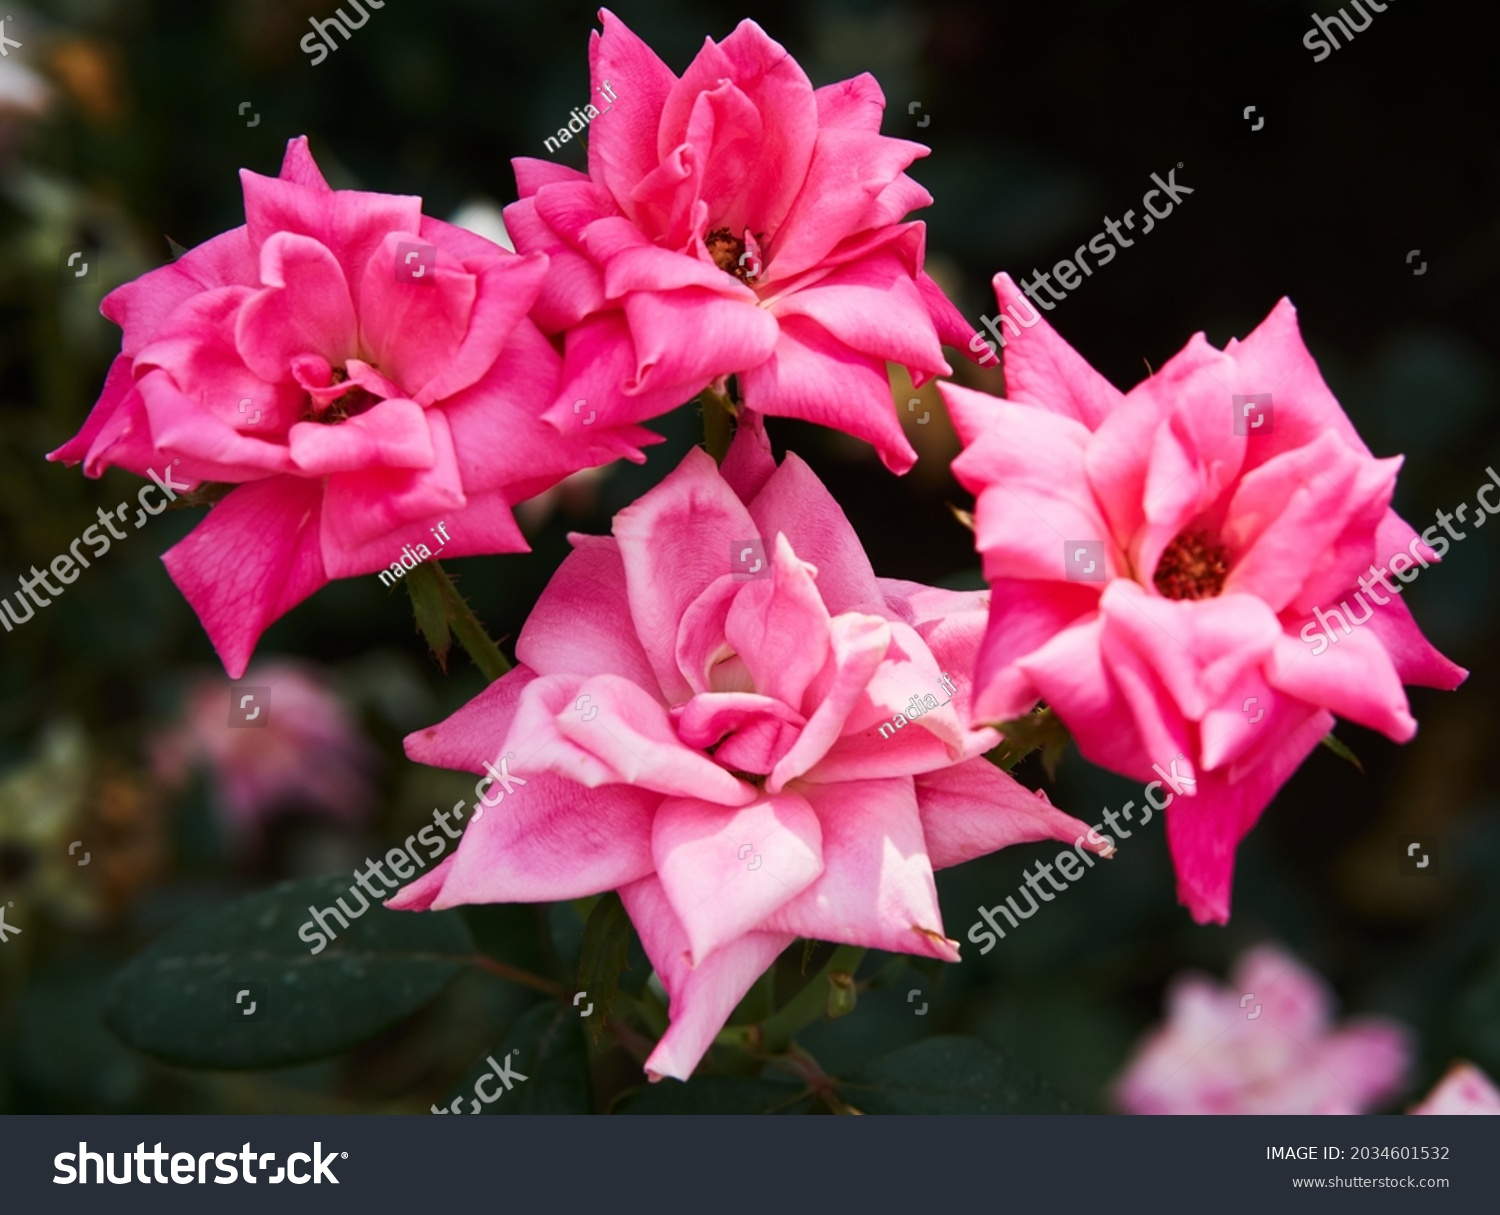 Pink rose flower with green leaves on a blurry dark background. Beautiful blooming of a bright pink rose in a summer garden on a sunny day. High quality photo #2034601532